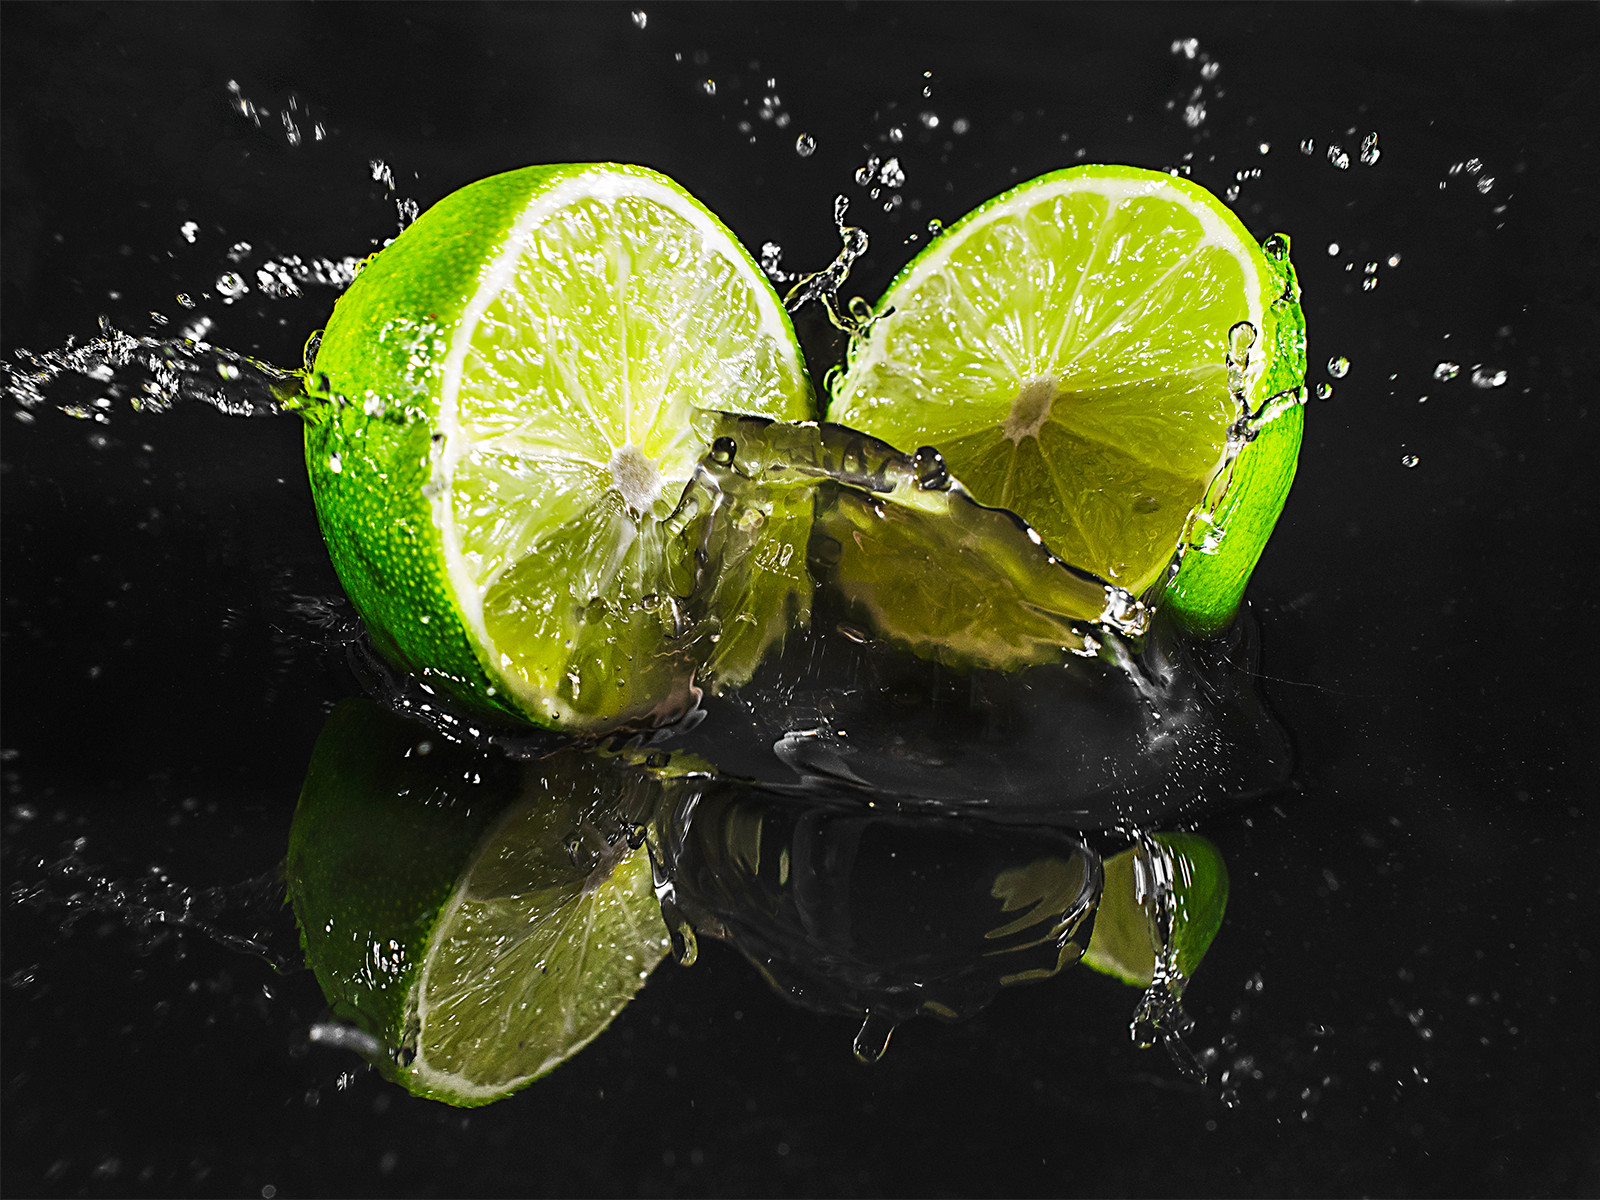 PDI - A Splash of Lime by Sharon Gilroy (8 marks)